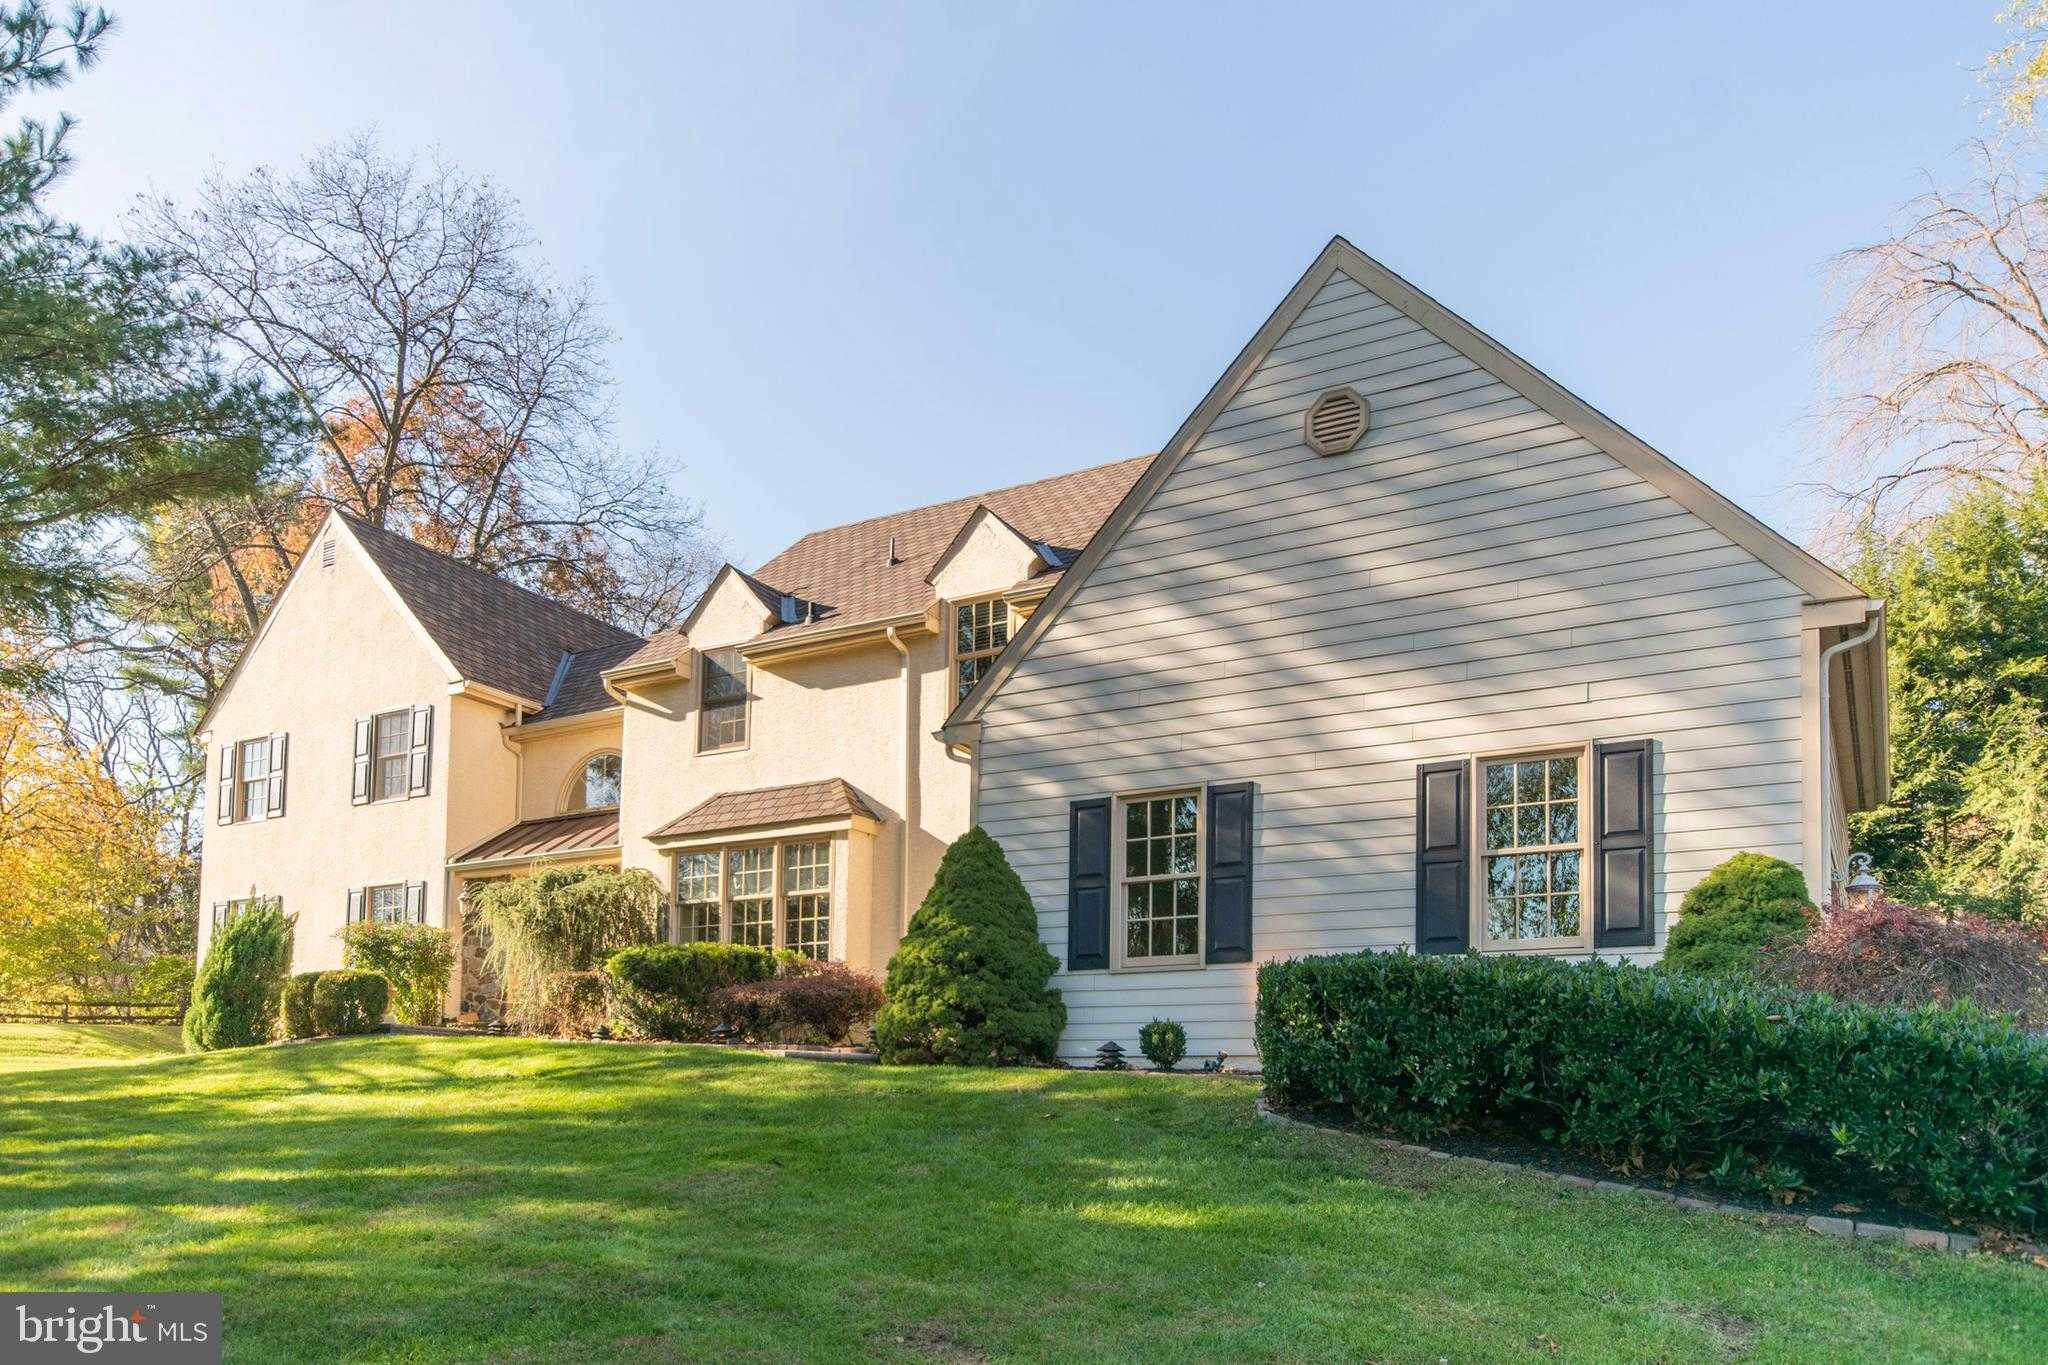 $849,000 - 4Br/4Ba -  for Sale in Hidden Springs, Newtown Square